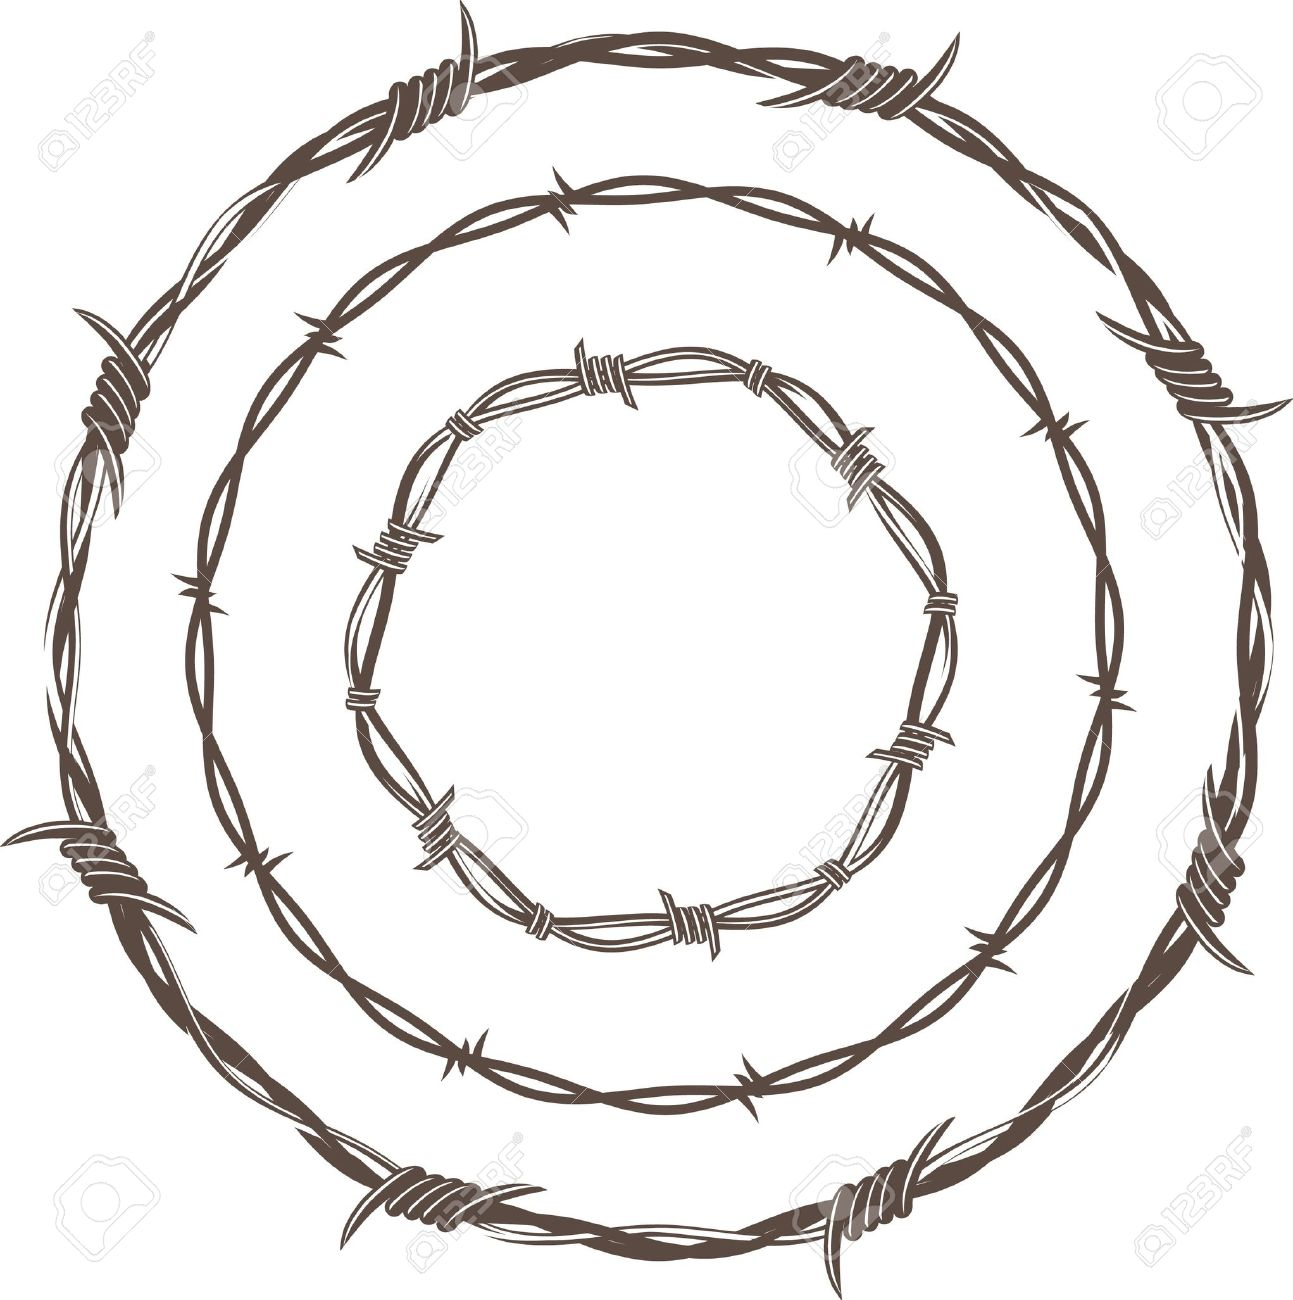 Barbed Wire Rings Royalty Free Cliparts, Vectors, And Stock ...